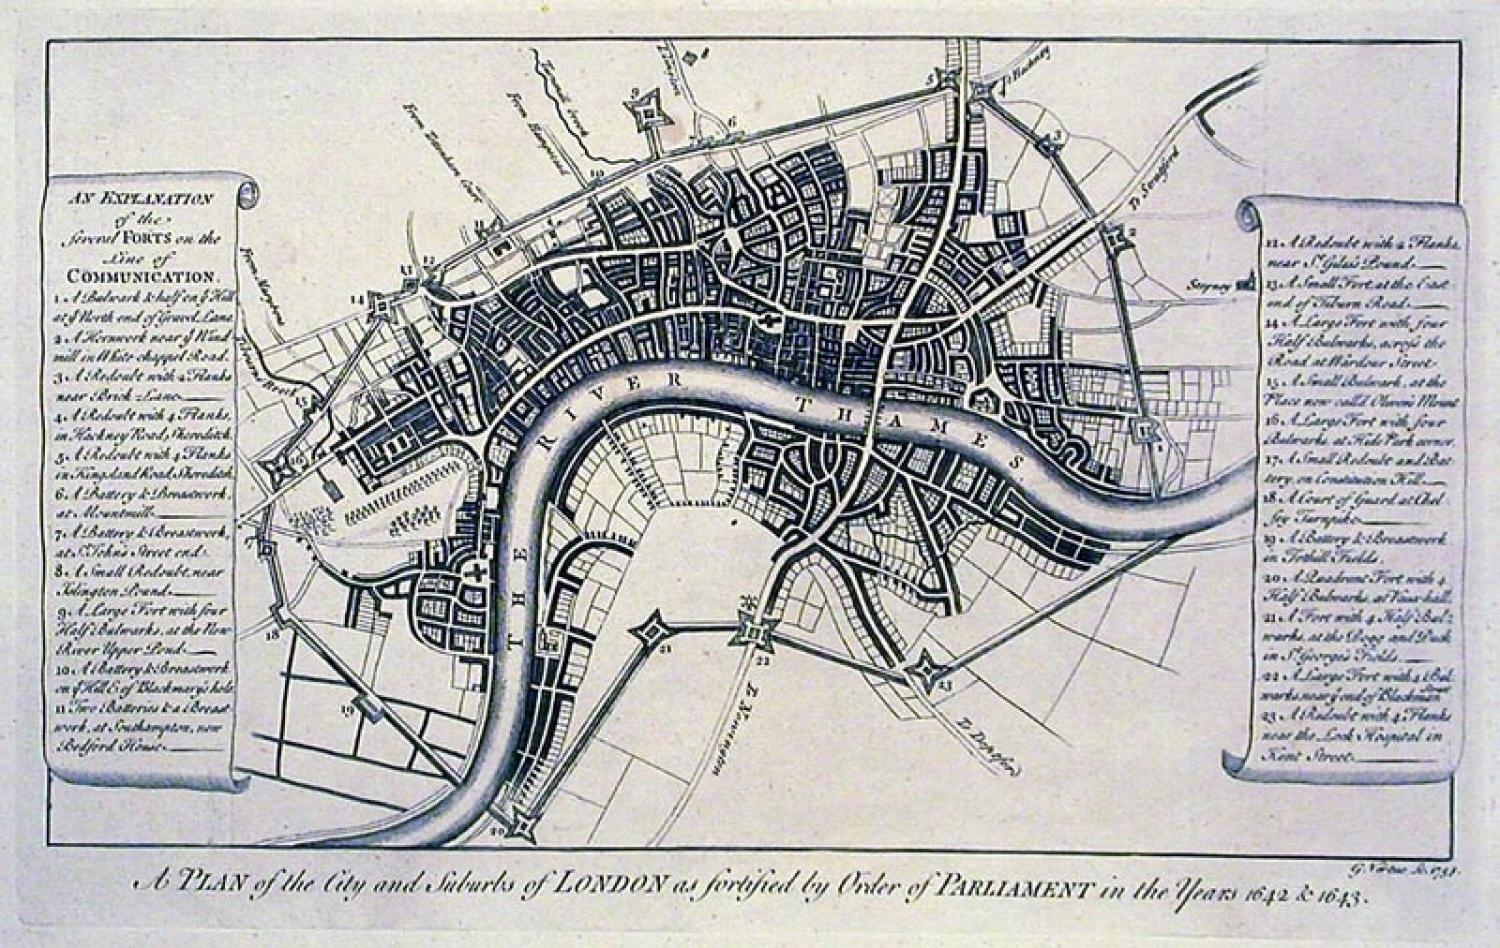 SOLD A plan of the City and suburbs of London as fortified by order of Parliament in the years 1642 & 1643